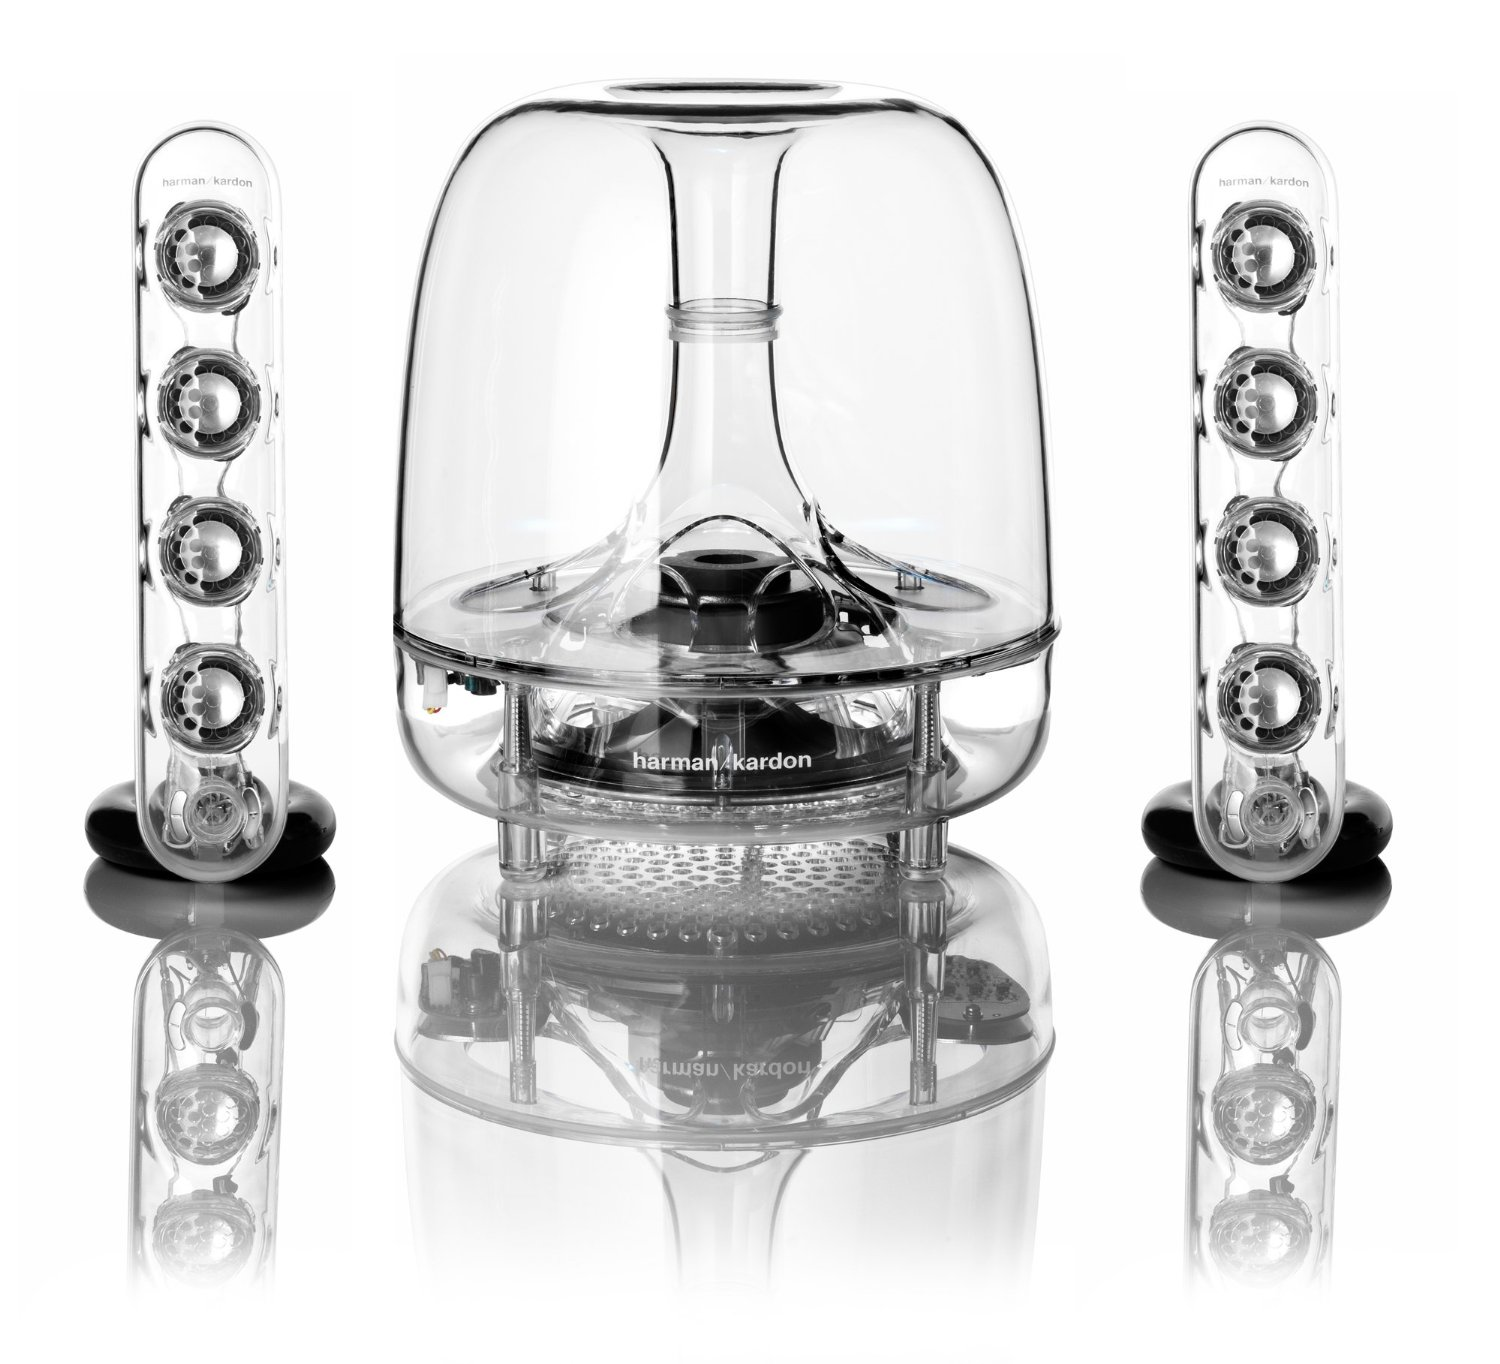 רמקול למחשב Harman-Kardon SoundStick lll 2.1